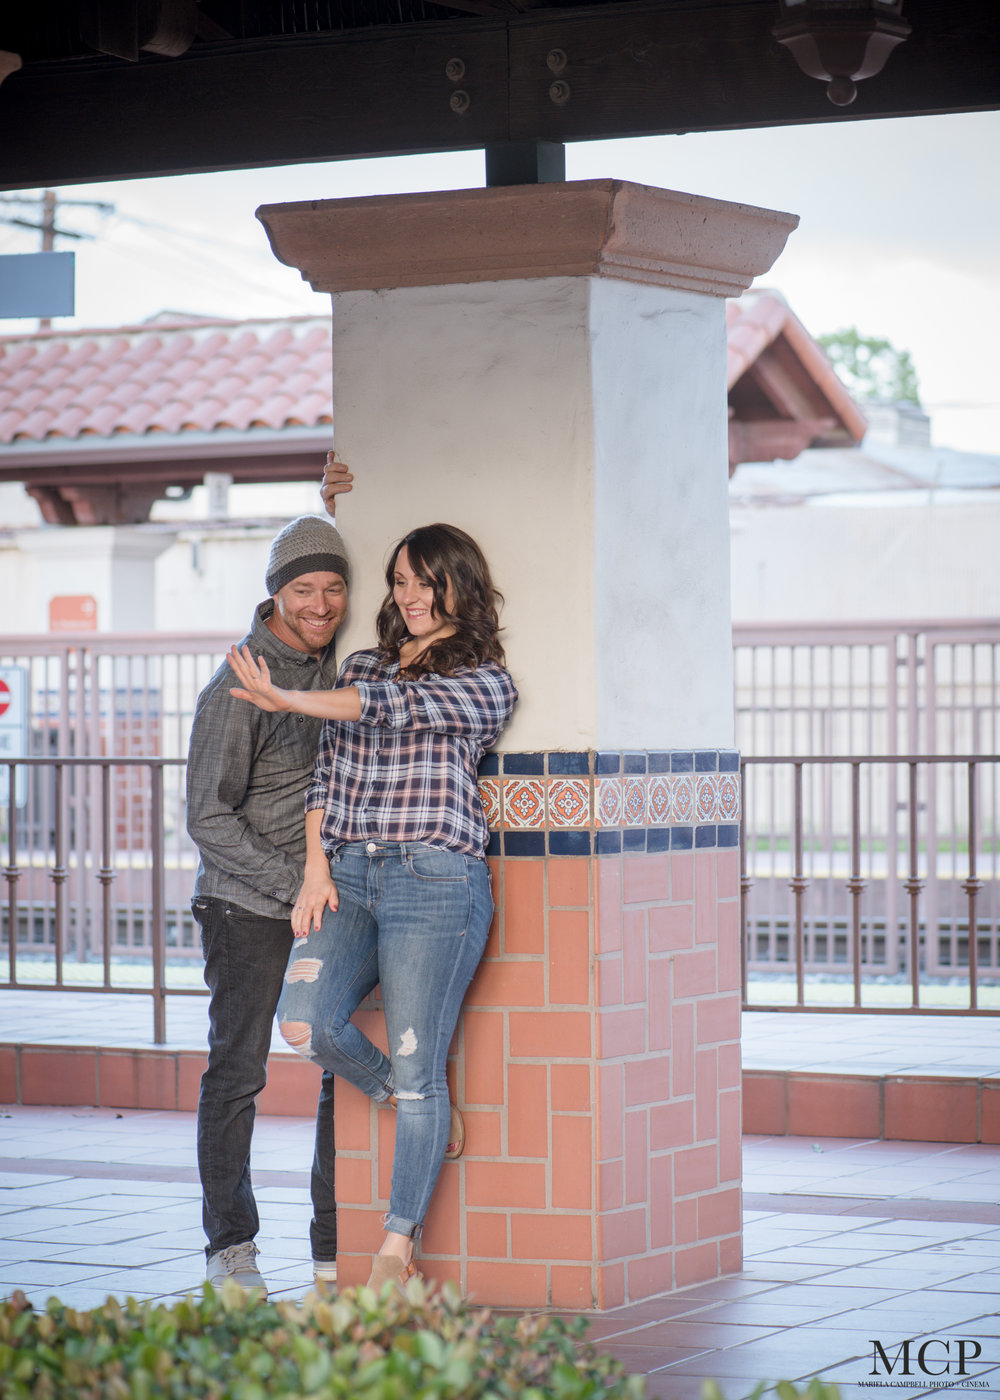 Amanda & Travis - Santa Ana Train Station - MCP-179.jpg